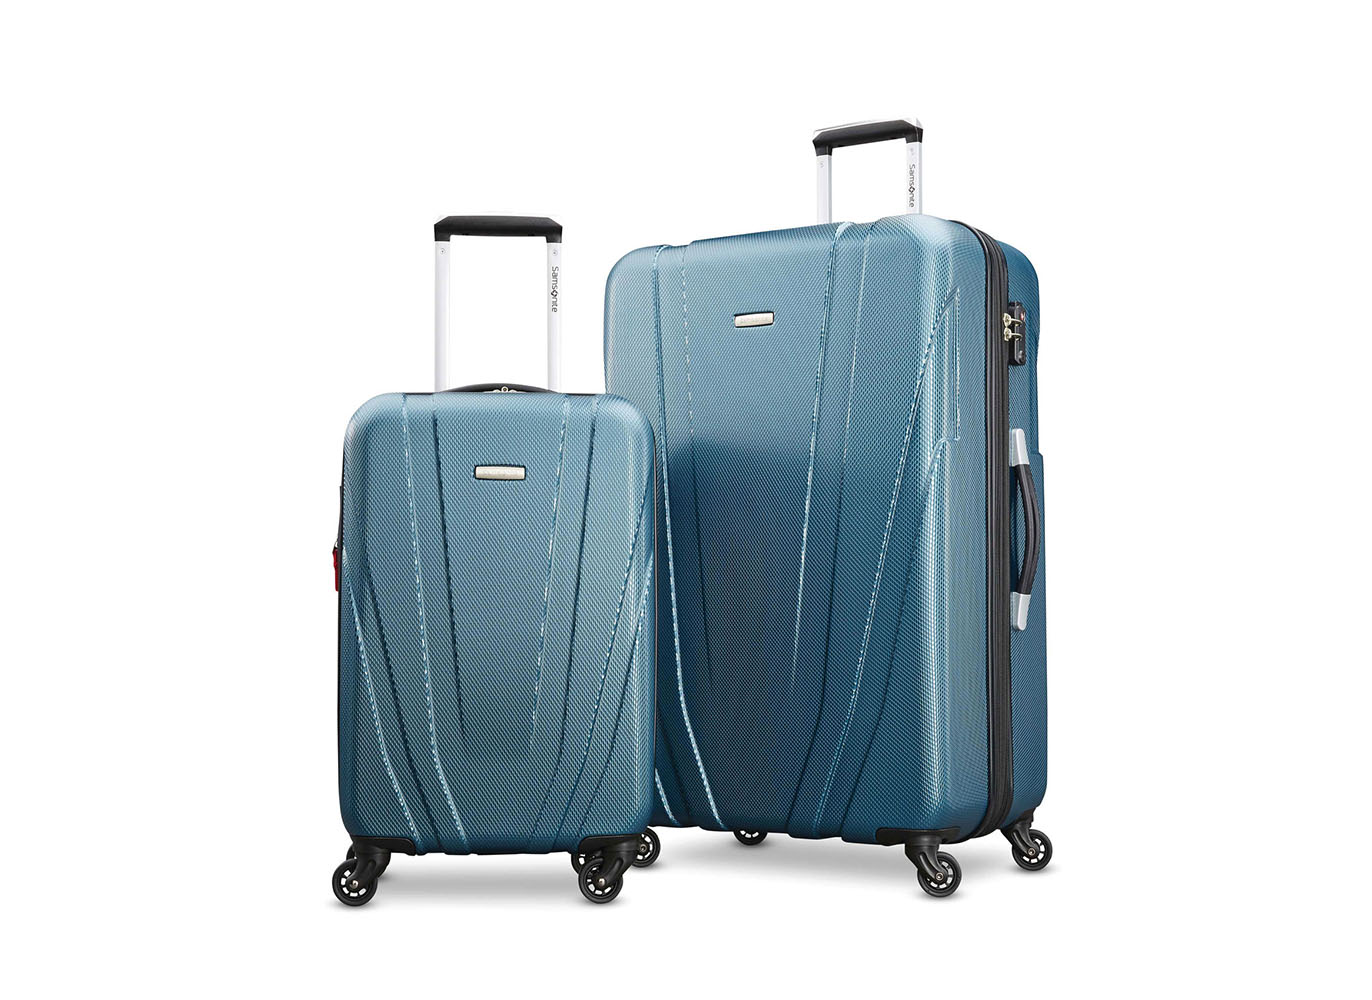 Samsonite Valor Luggage Set